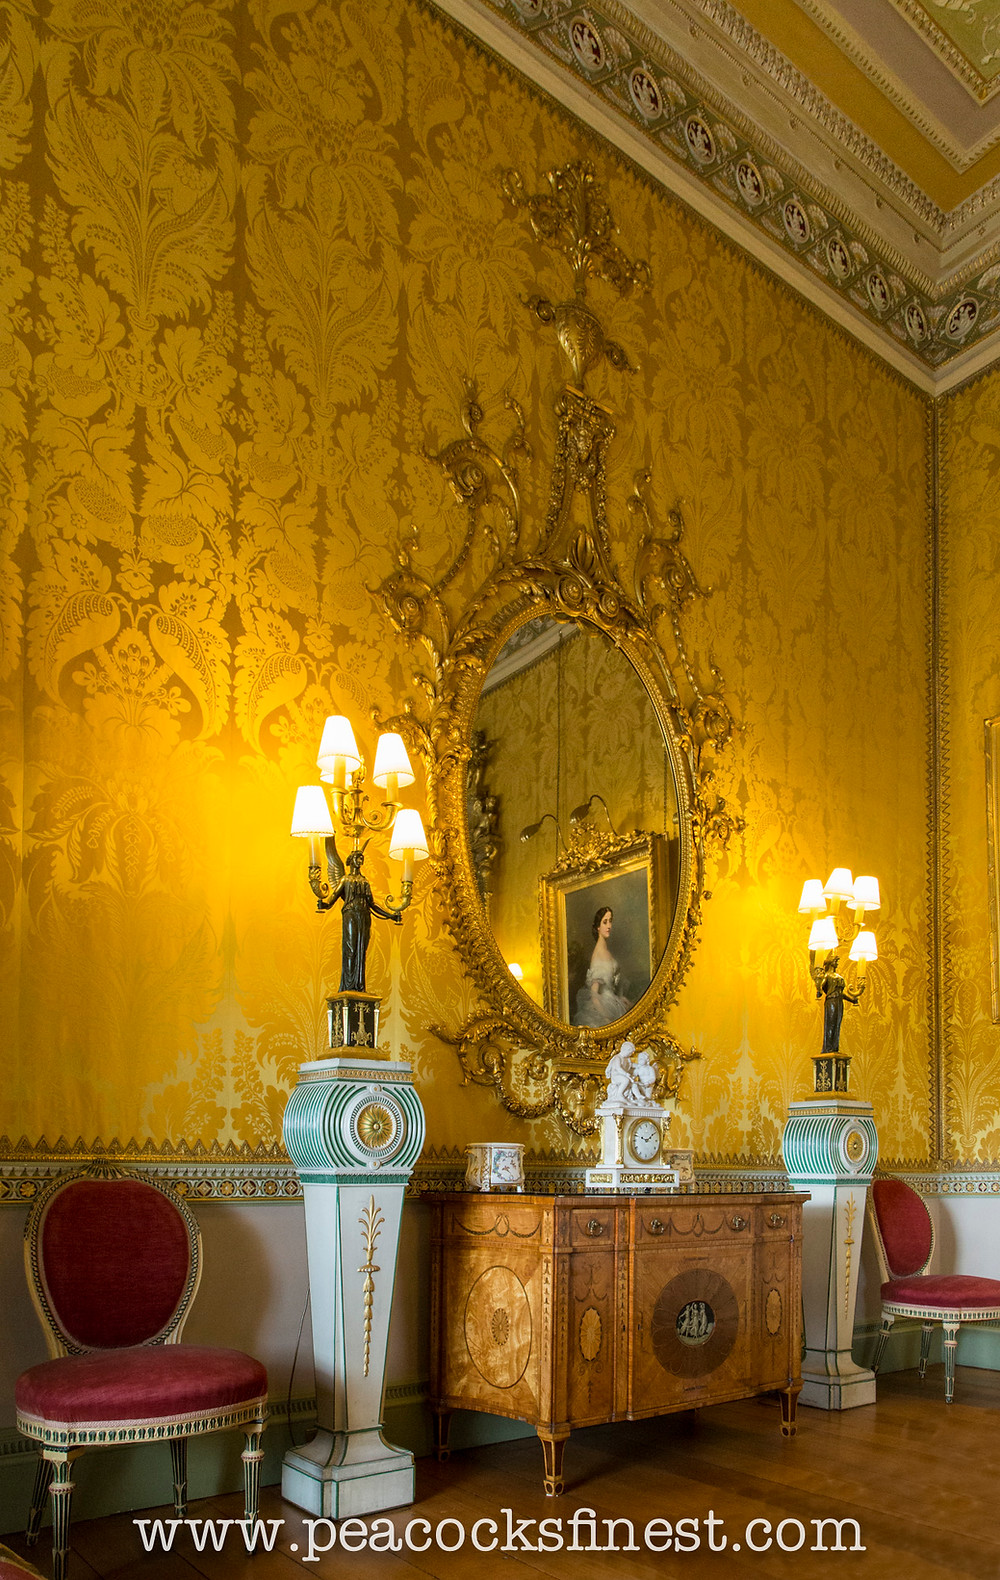 Harewood House, The Yellow Drawing Room. A splendid collection of Chippendale's furniture: an ornate mirror, one of a pair, above the magnificent satinwood and marquetry commode, from the State Bedroom suite, a pair of torcheres in the neoclassical taste, and a pair of painted side chairs